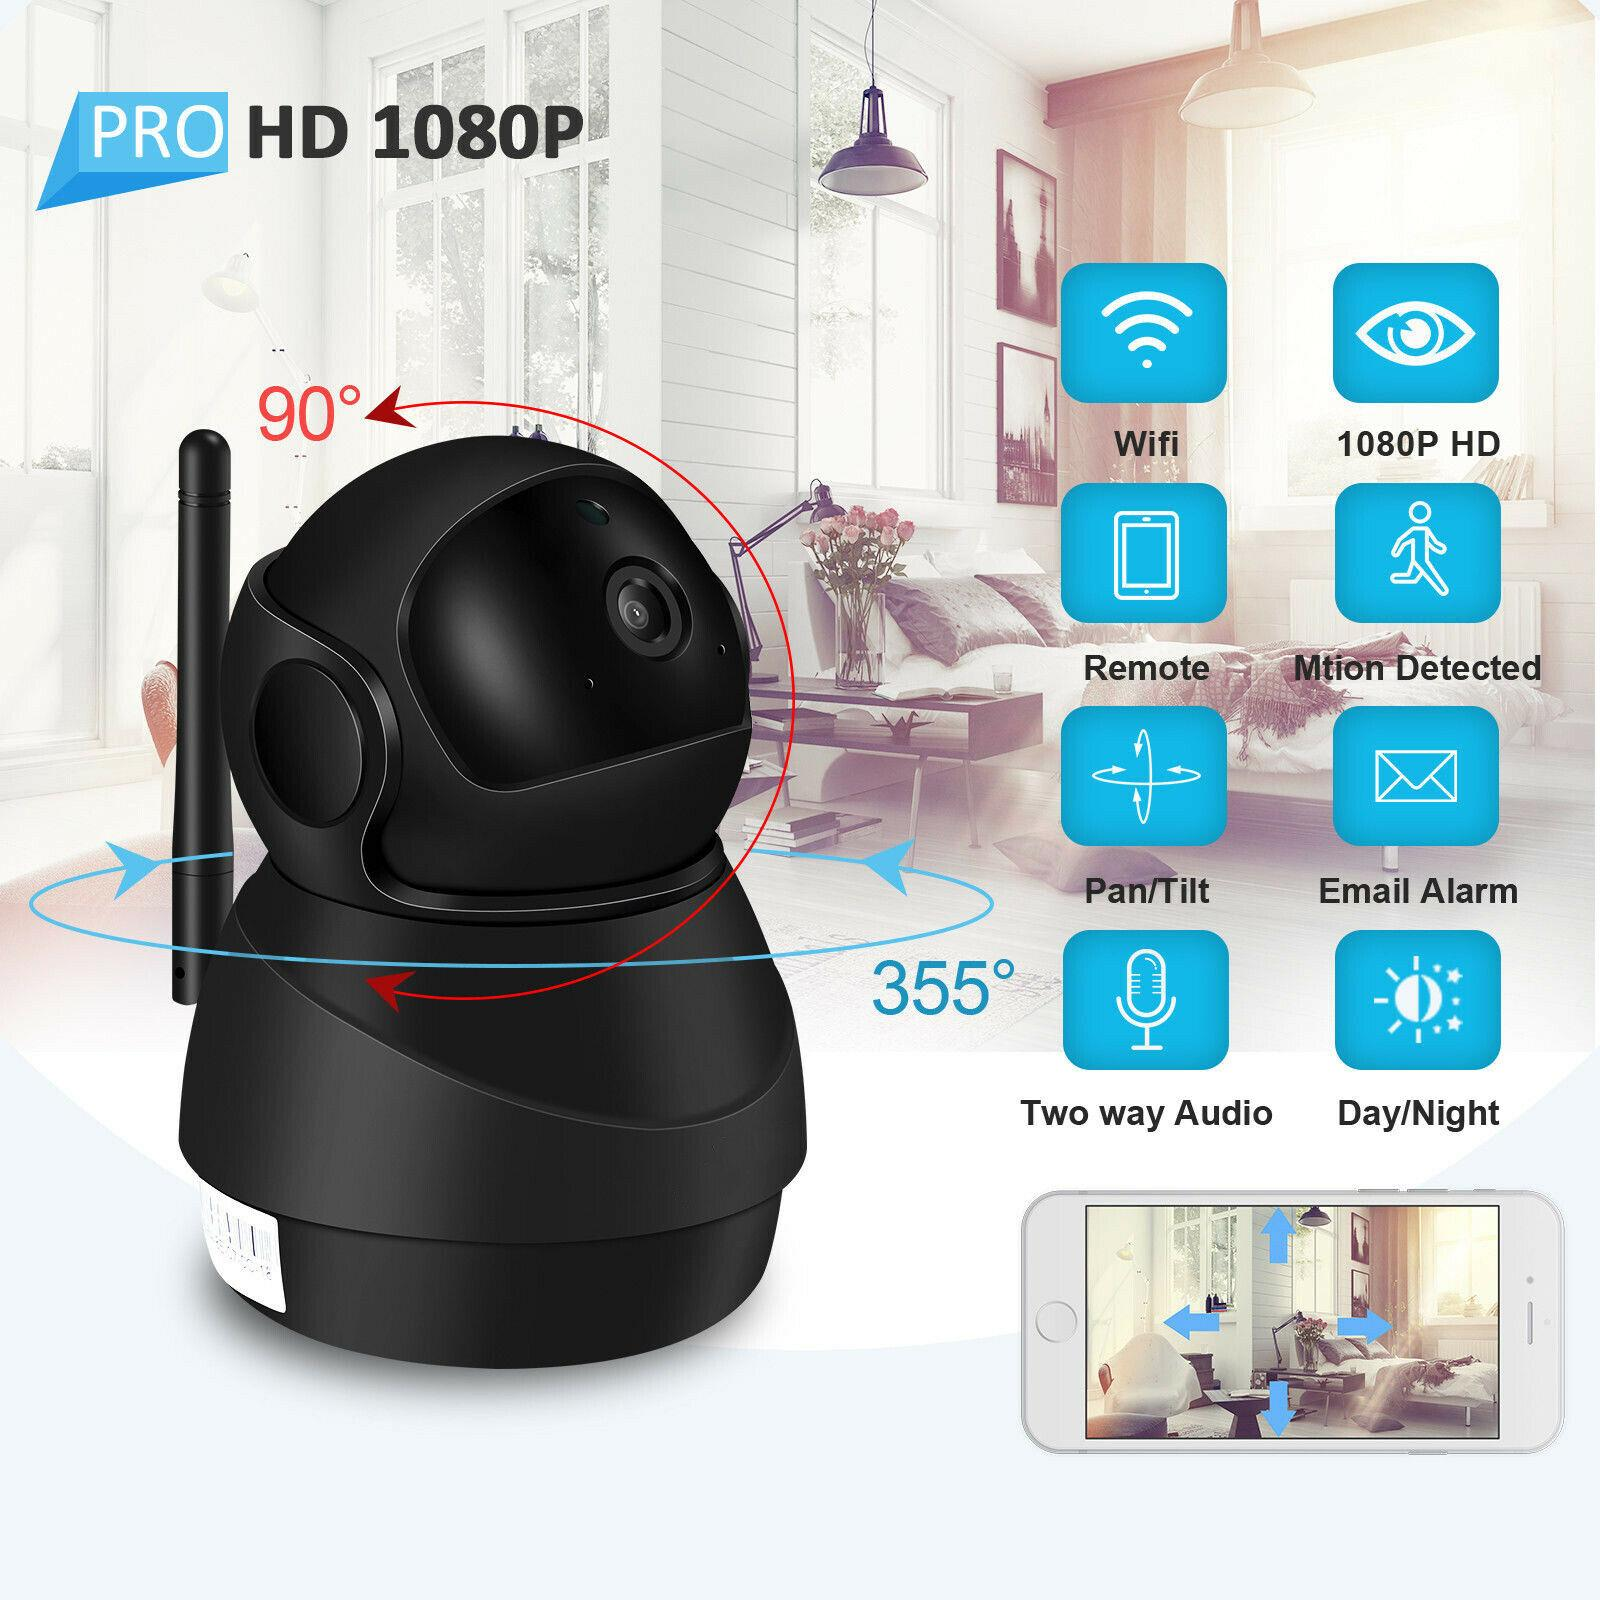 1080P HD IP Camera Wifi Two-Way Audio Video Camera Cloud Home Surveillance Night Vision Security Camera Baby Monitor